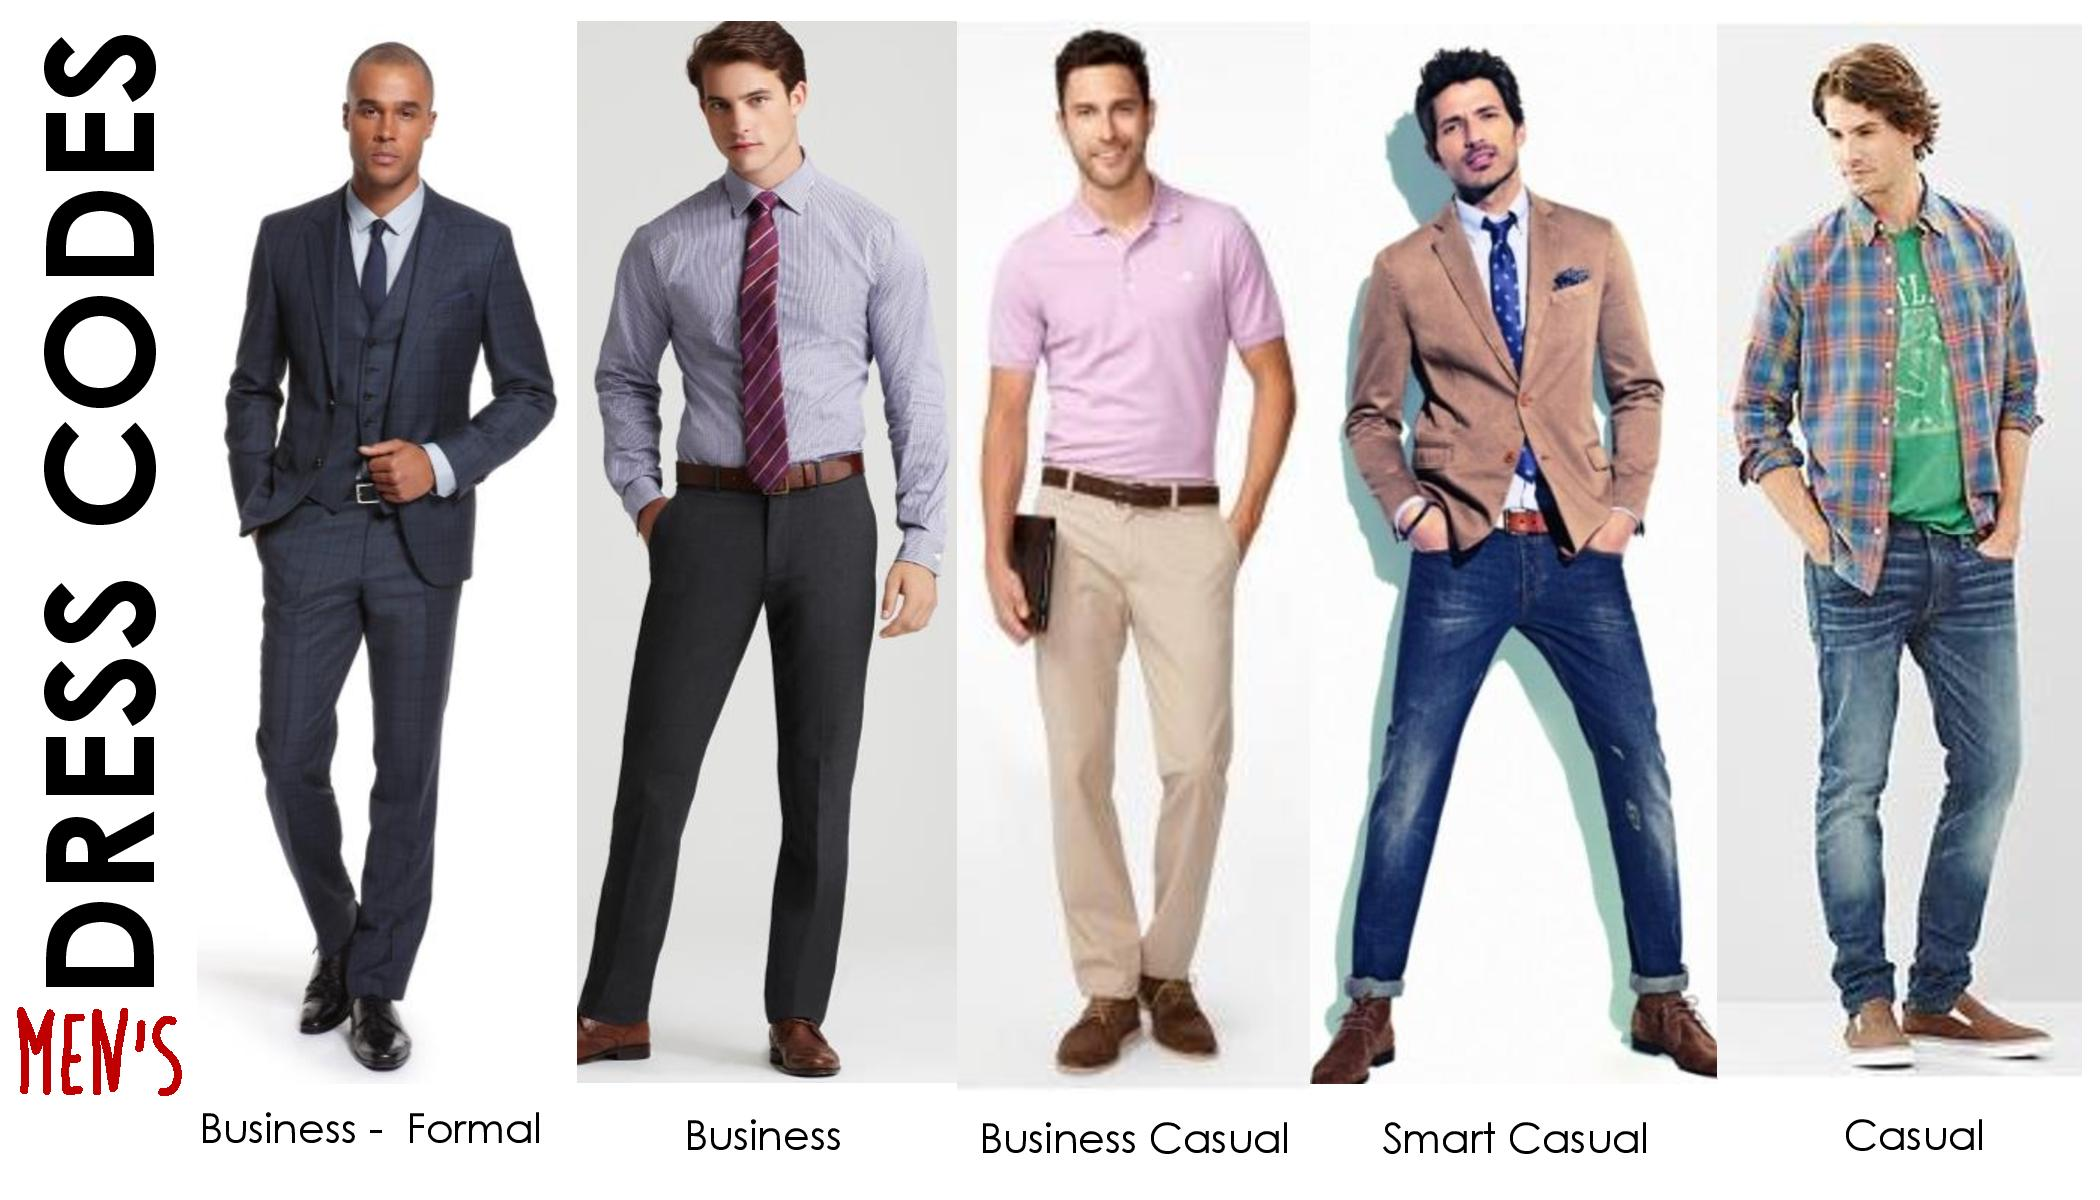 b451033a729 Breaking down office dress codes (business formal to casual)   deciding how  to dress for your next interview.